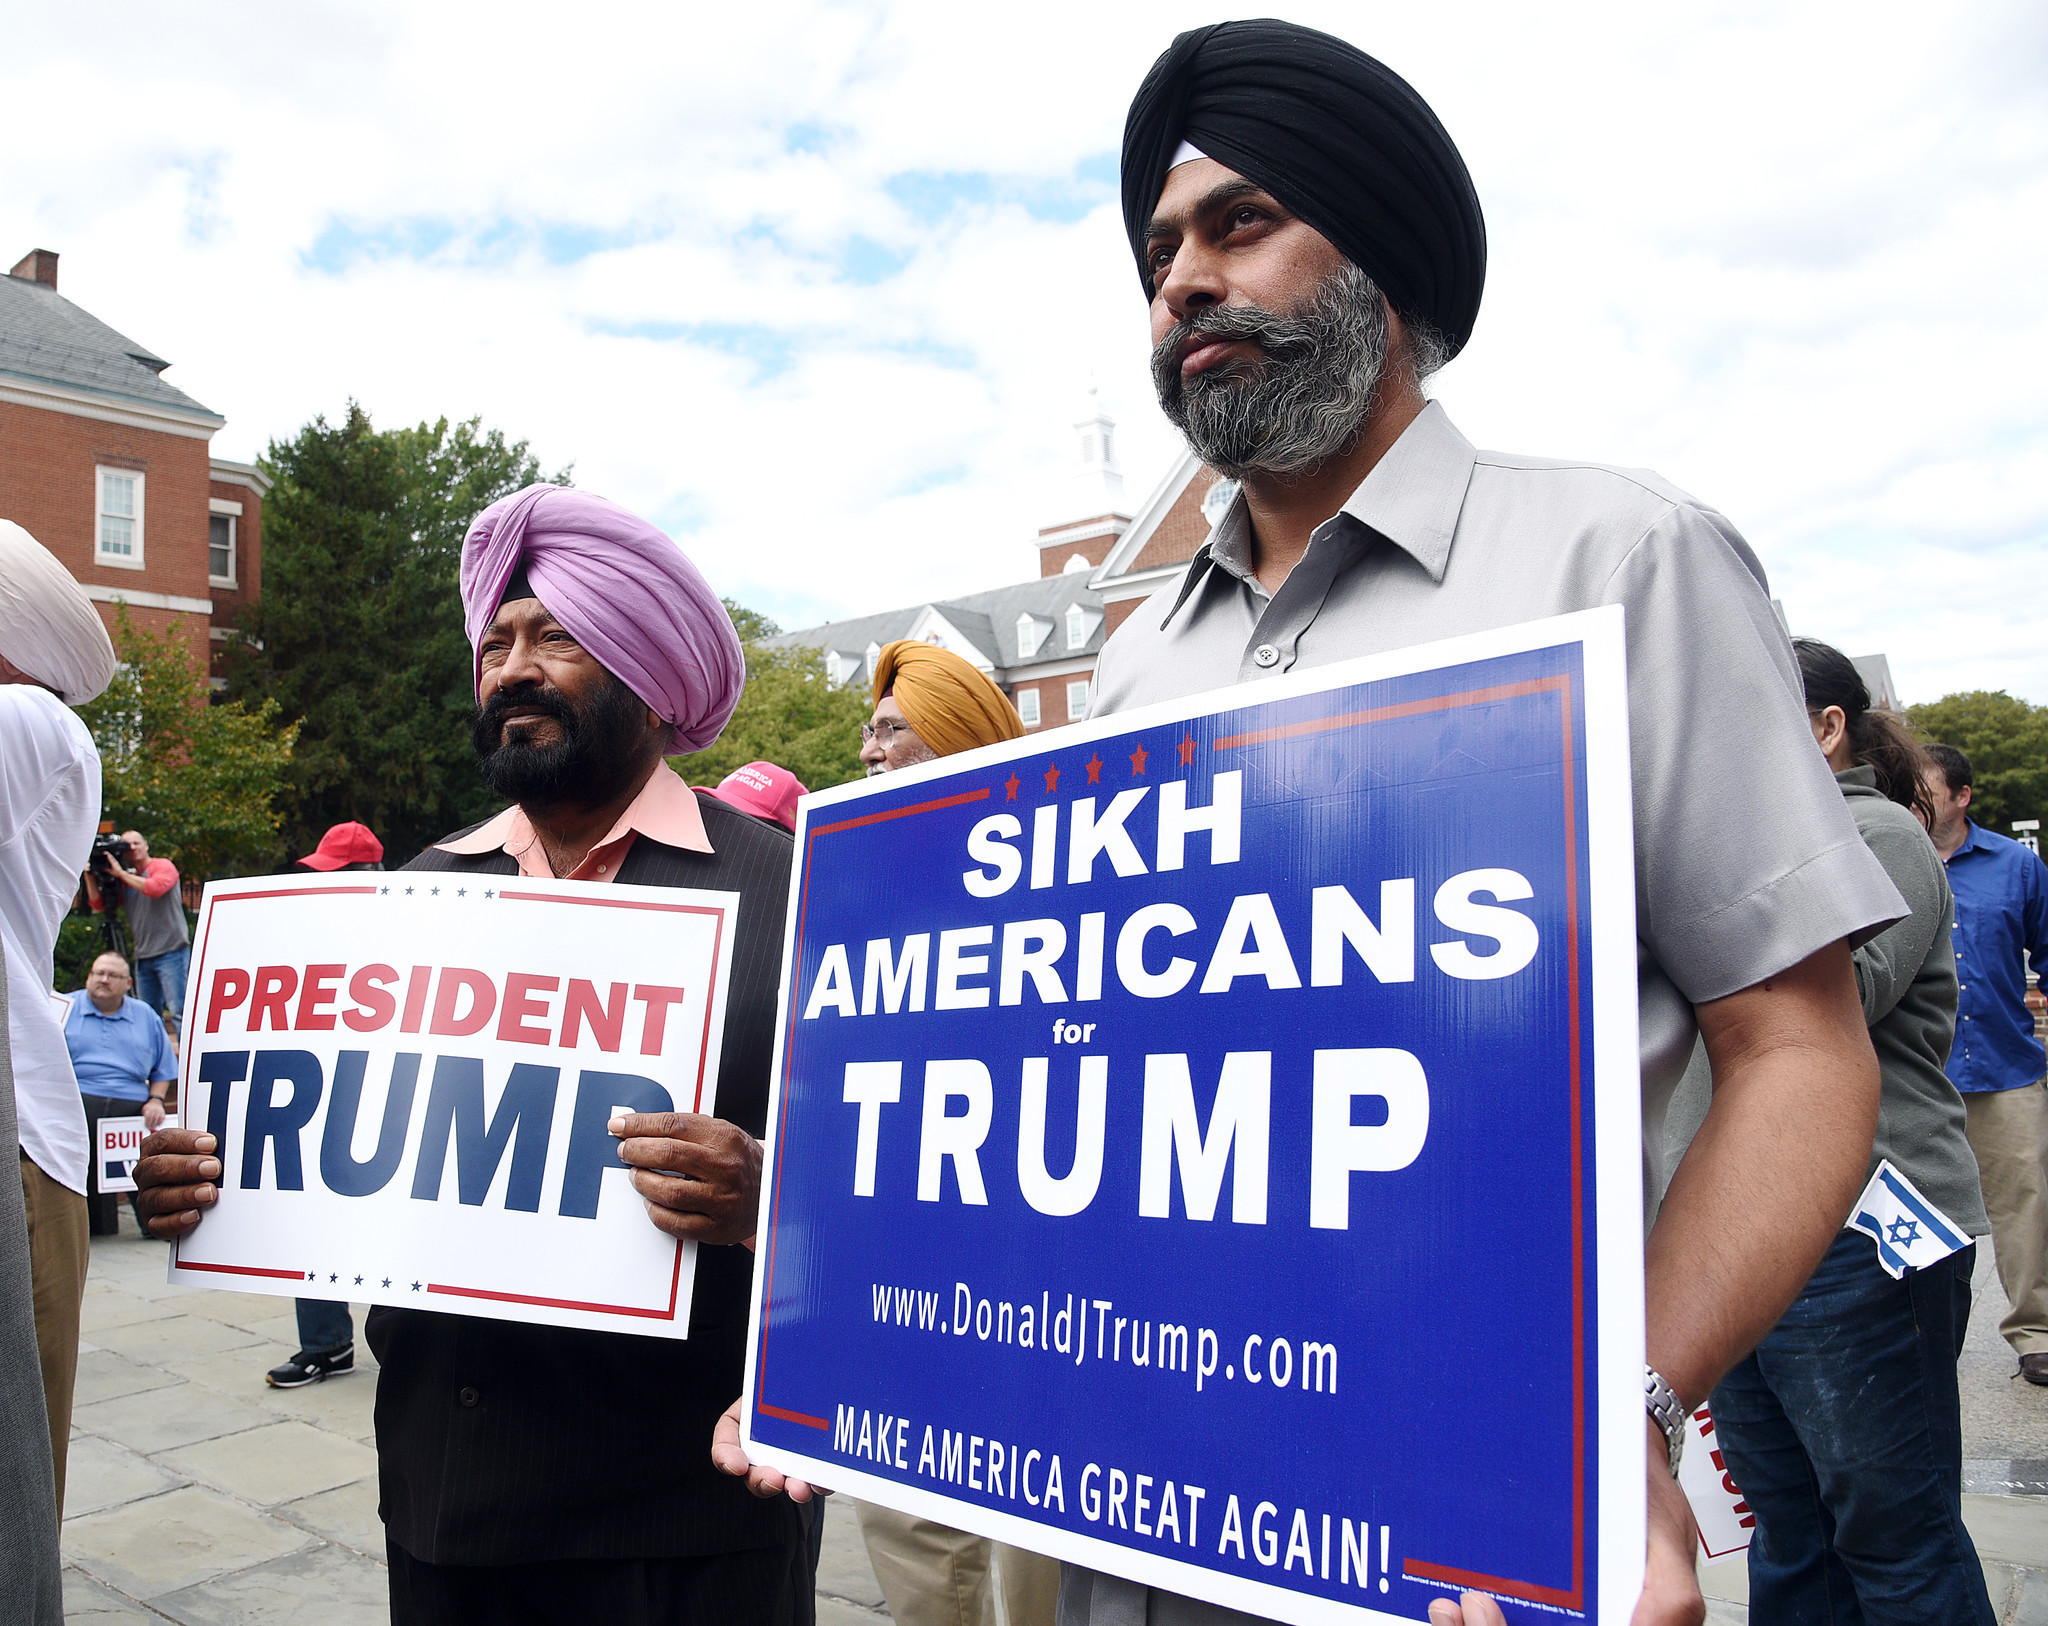 Muslim Supporters For President Donald Trump Rally In Annapolis